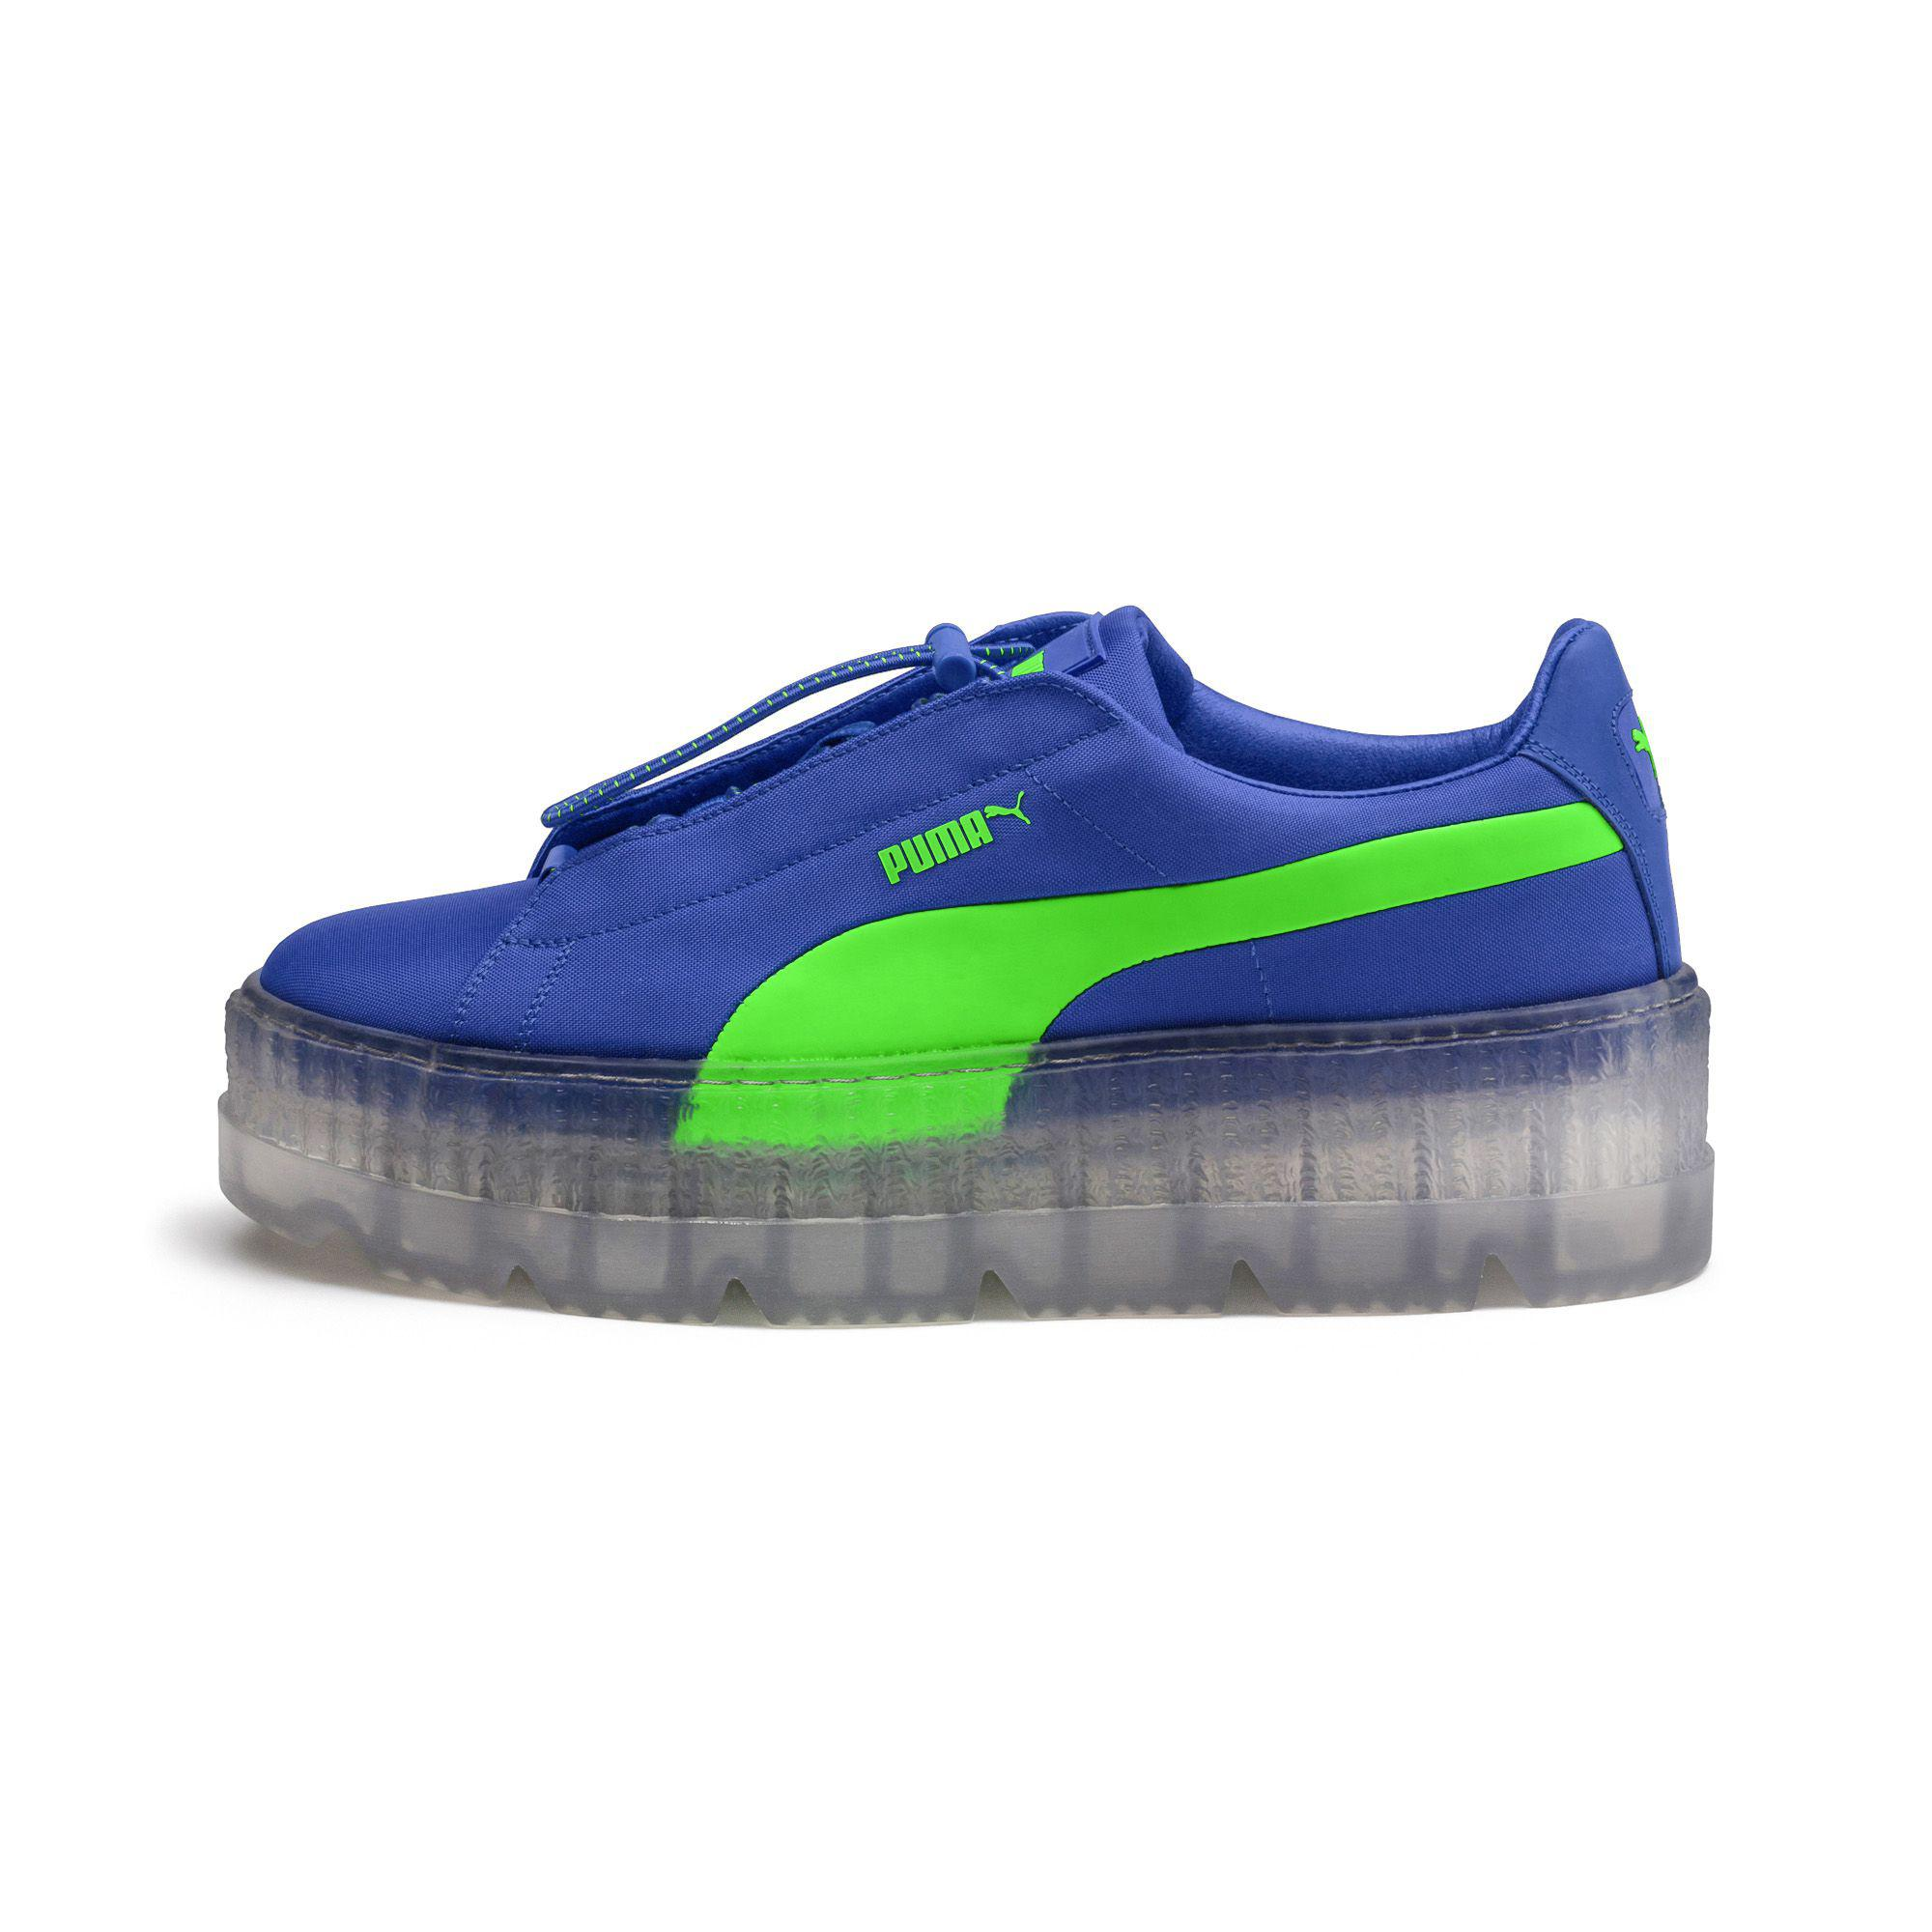 best website 1aba4 d69e3 Blue Fenty Women's Cleated Creeper Surf